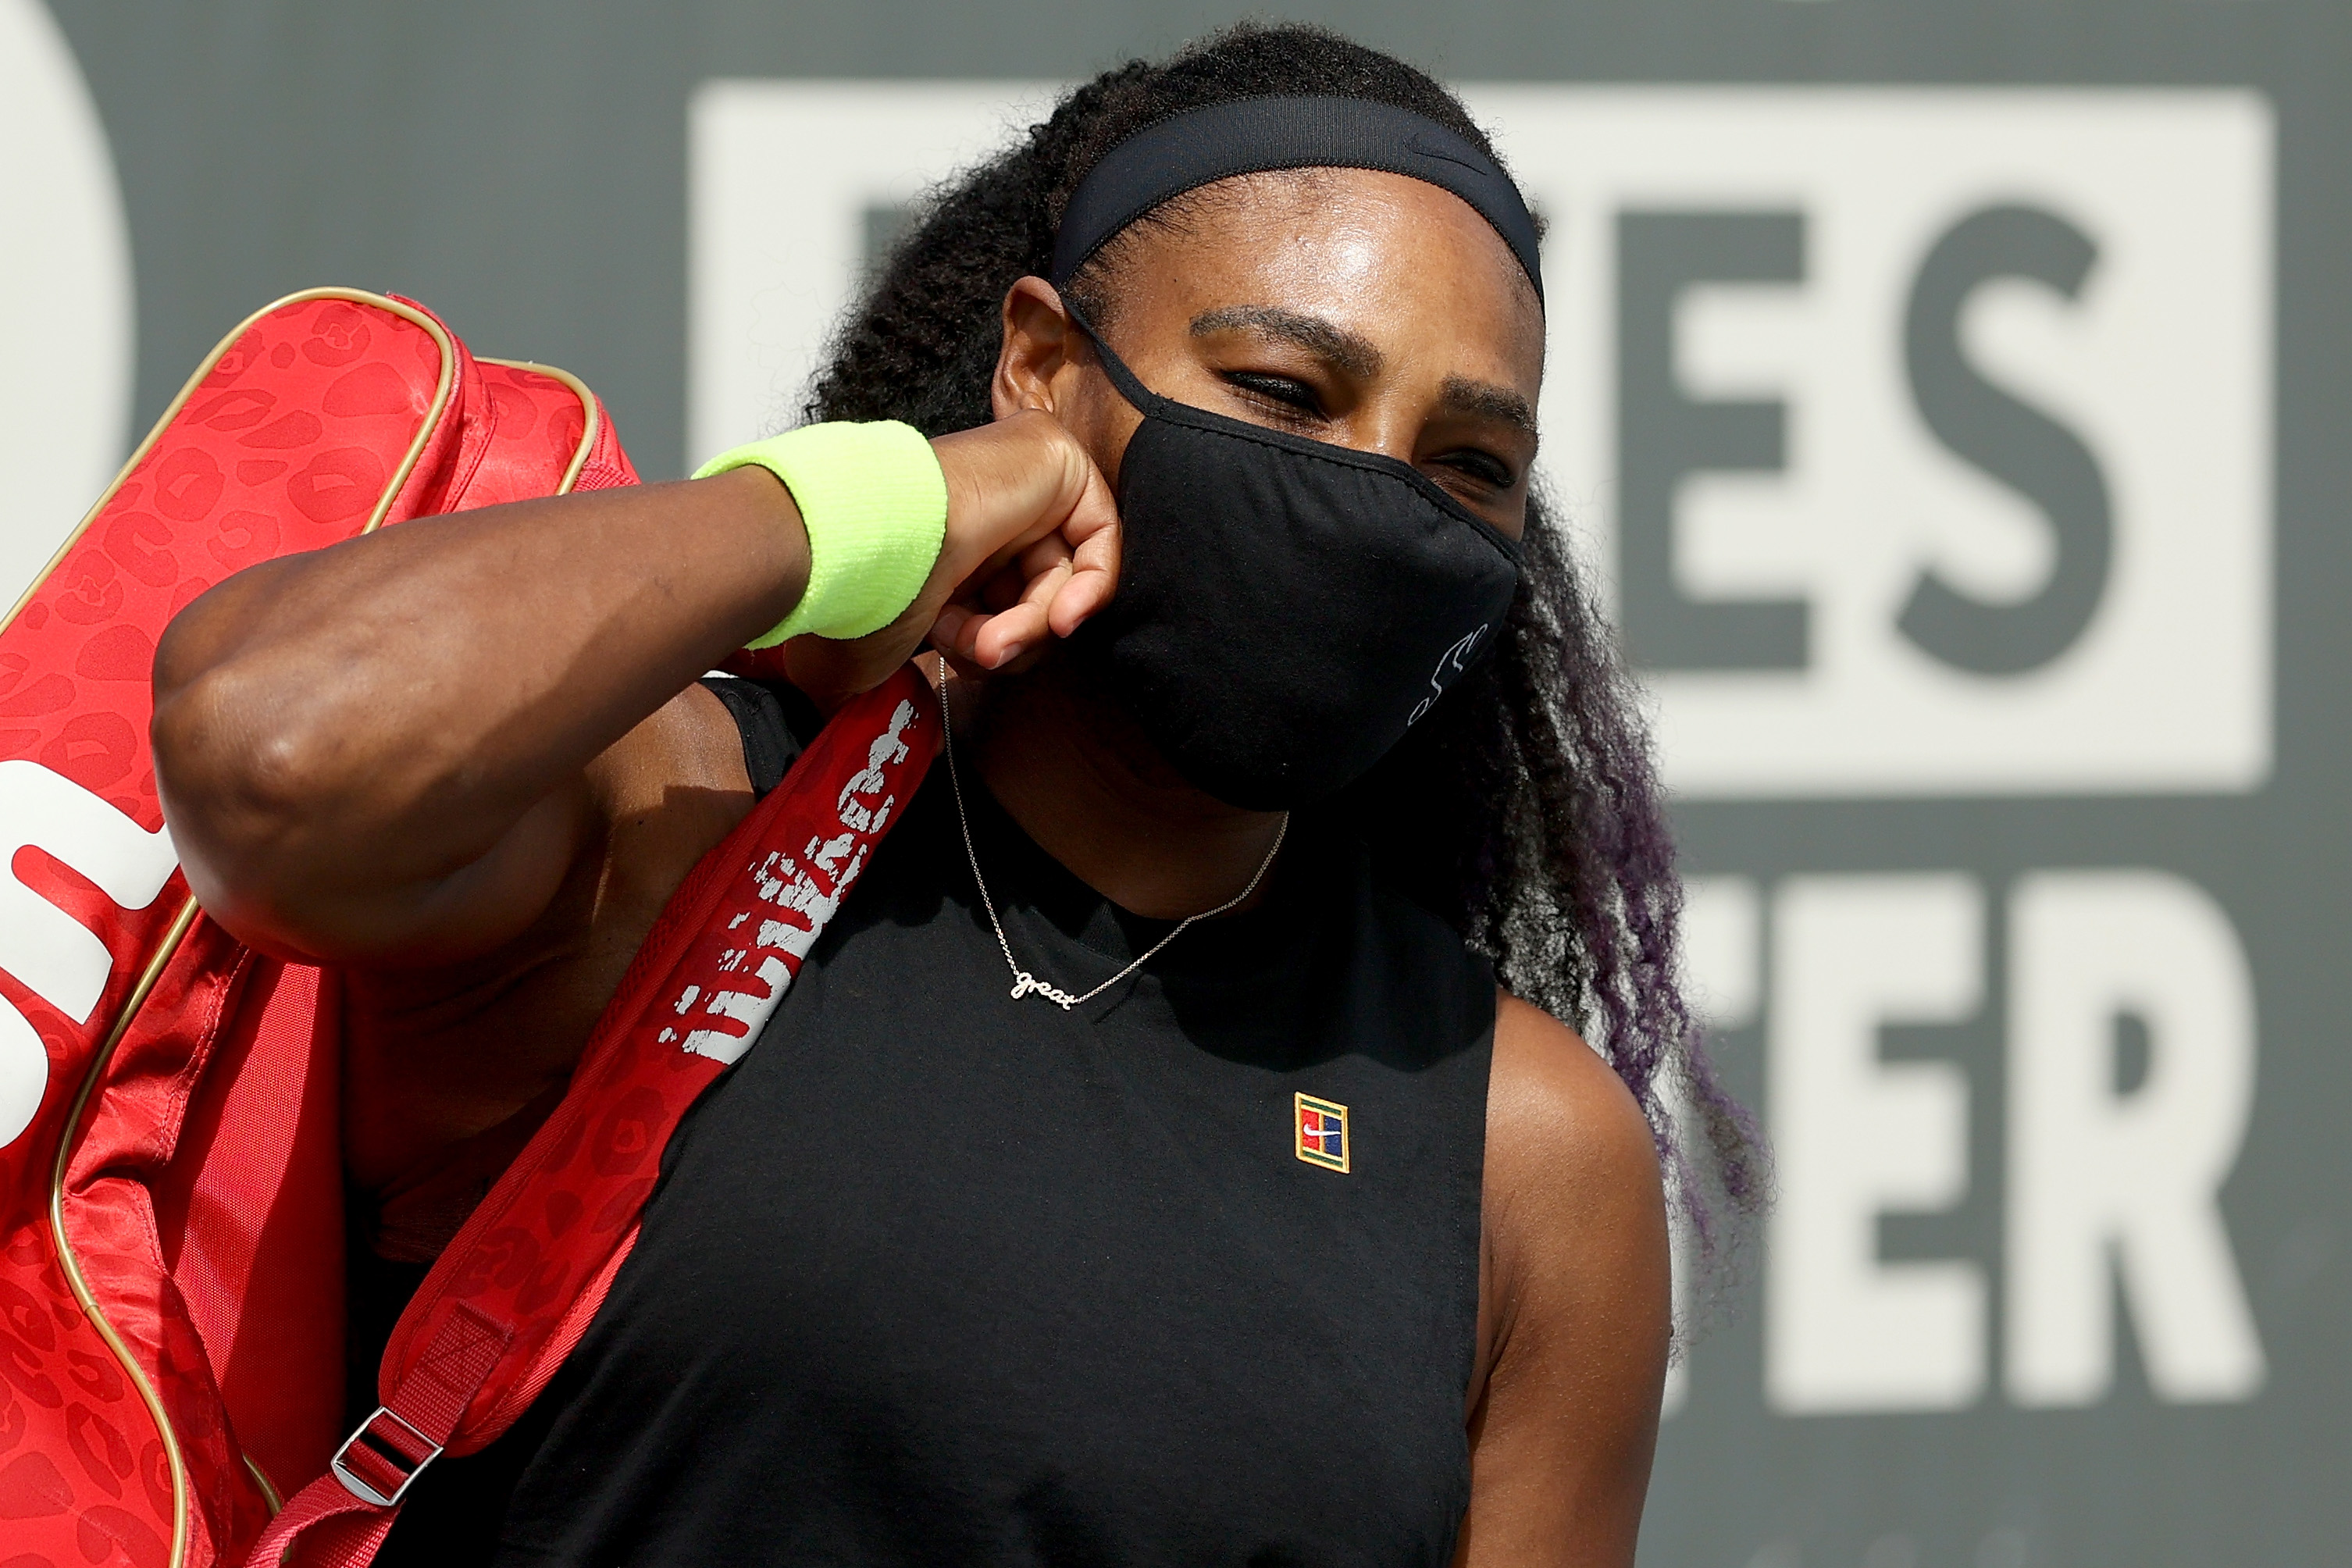 Serena Williams has chosen private accommodation over the US Open hotel provided for players after past health scares including pulmonary embolisms.